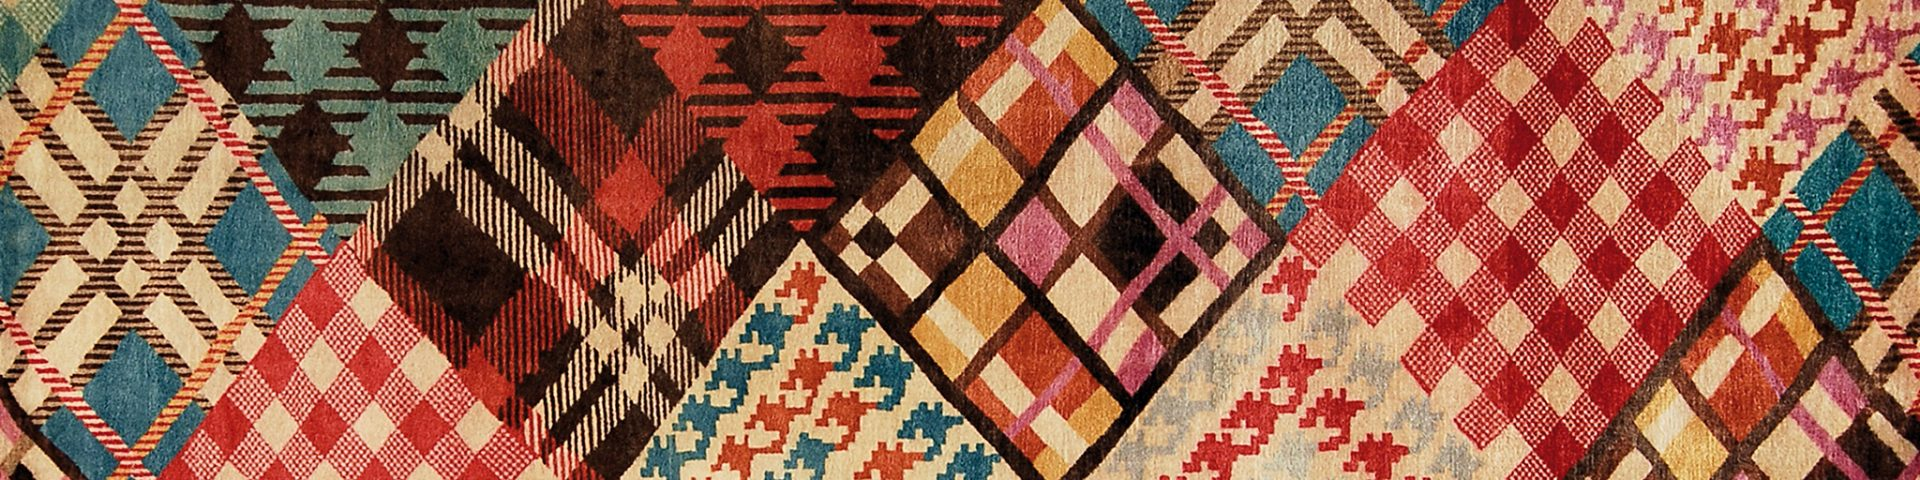 Madras Plaid and The Manshu Collection - Mischioff - The Ruggist